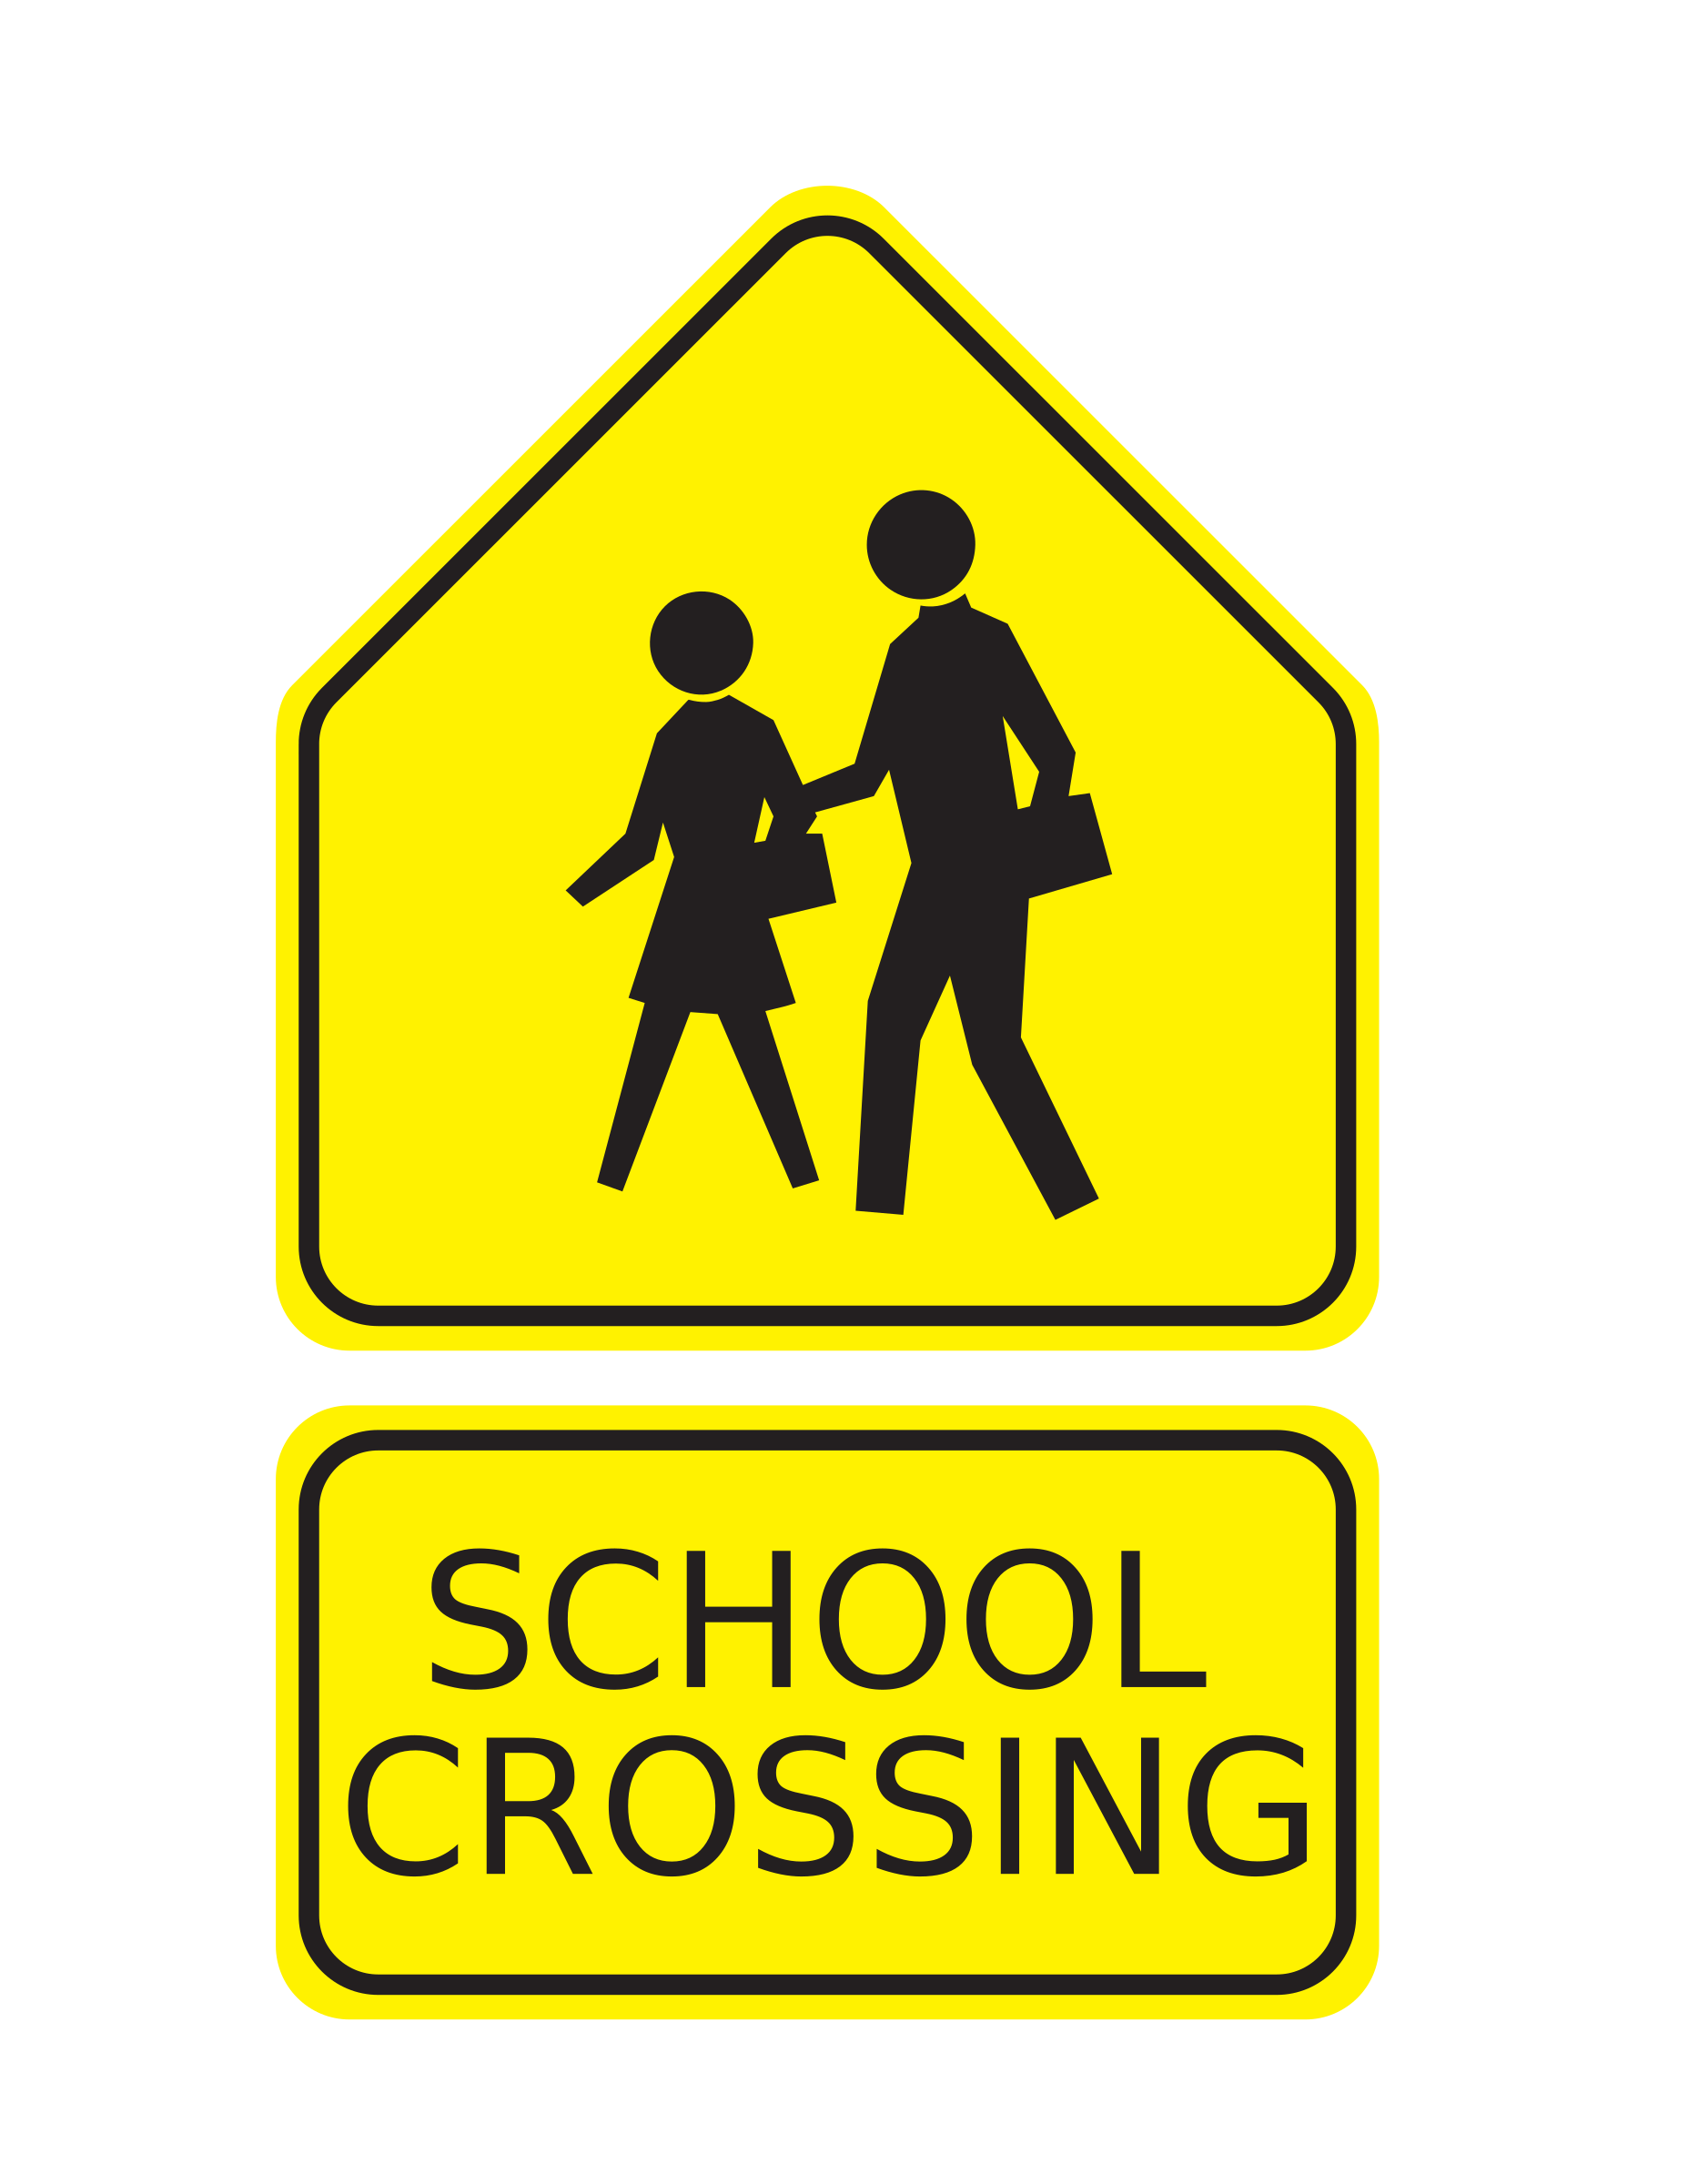 Free School Signs Clipart. BIG IMAGE (PNG)